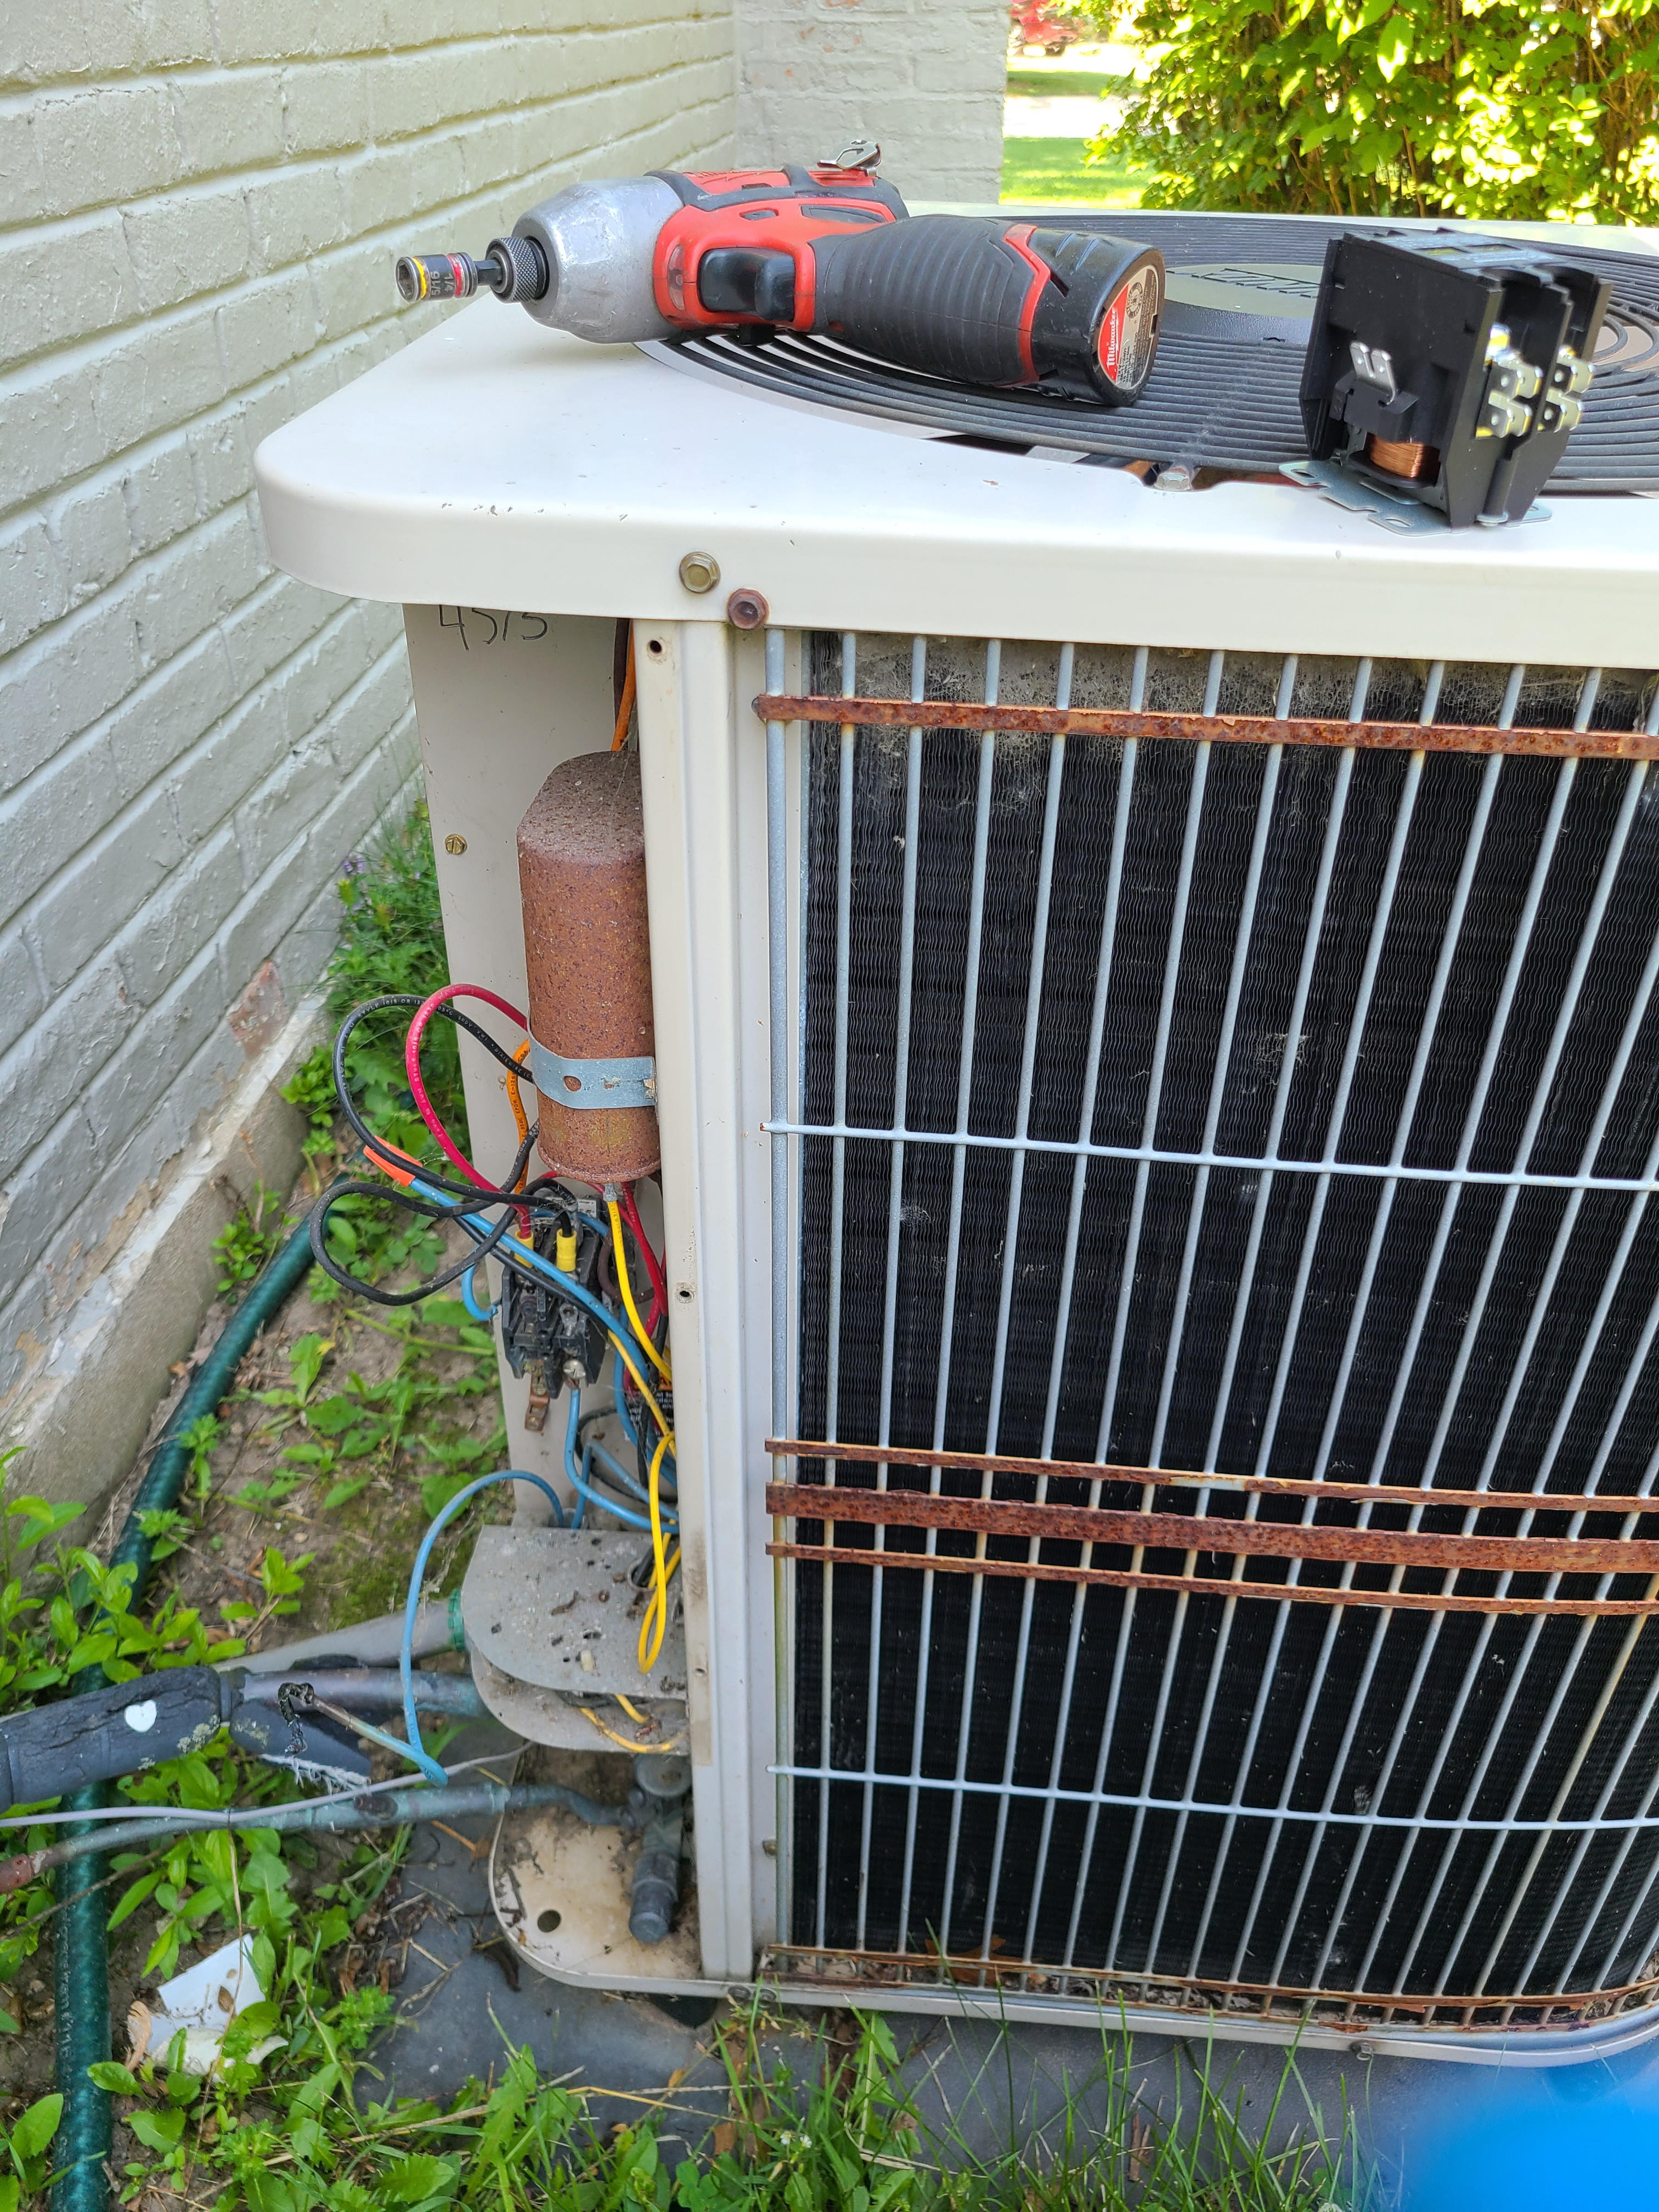 Lennox ac system with no cooling. Issue diagnosed and repaired with new contactor, operation restored.